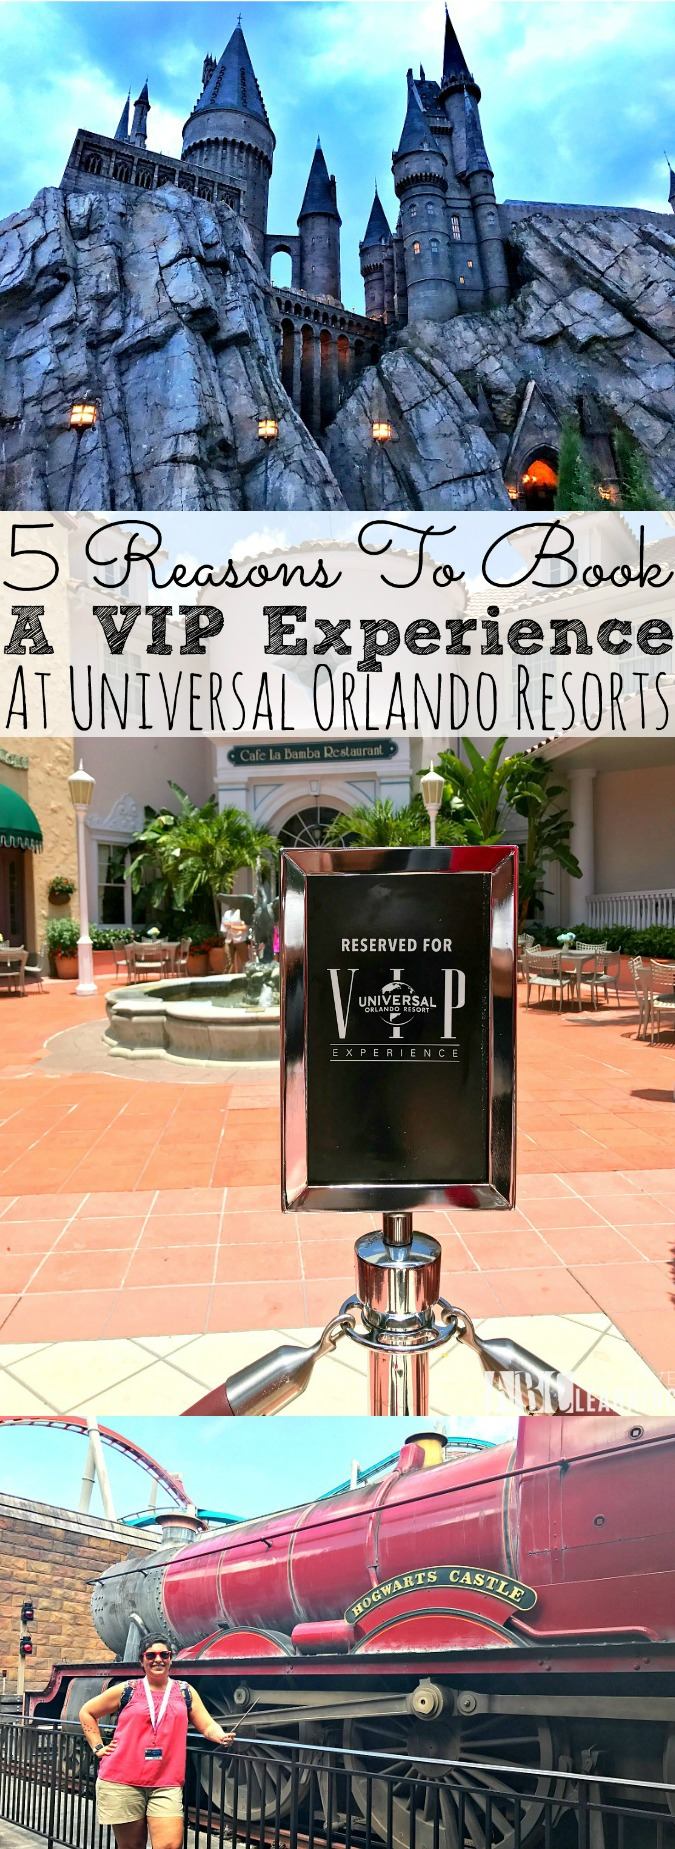 5 Reasons To Book A VIP Experience At Universal Orlando Resorts - abccreativelearning.com